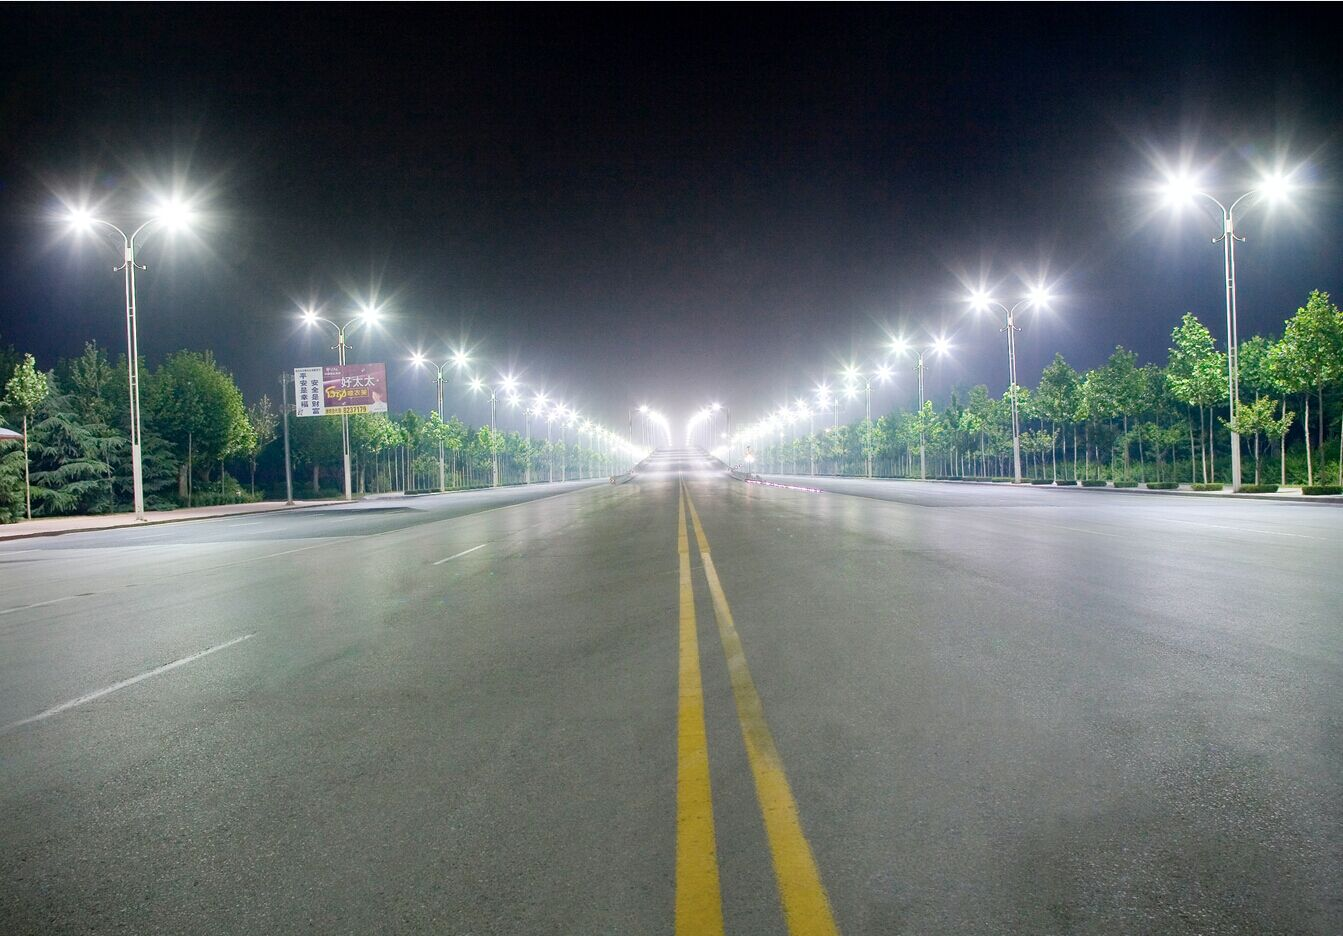 Lighting Project of LED street light 2